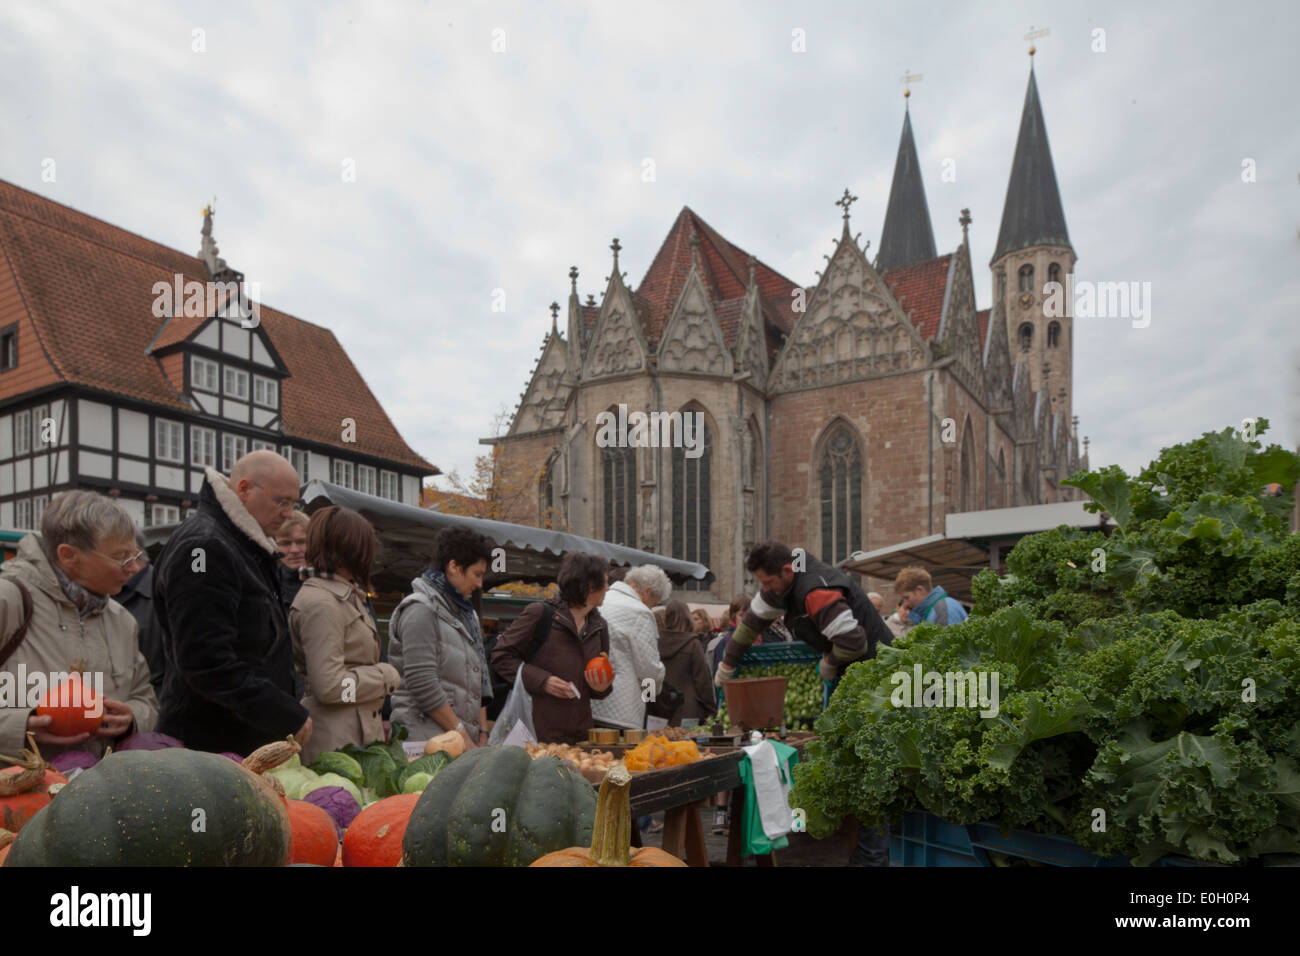 Medieval market square in the old town with Gewandhaus, Rueninger Customs House and St Martini church, market in Stock Photo